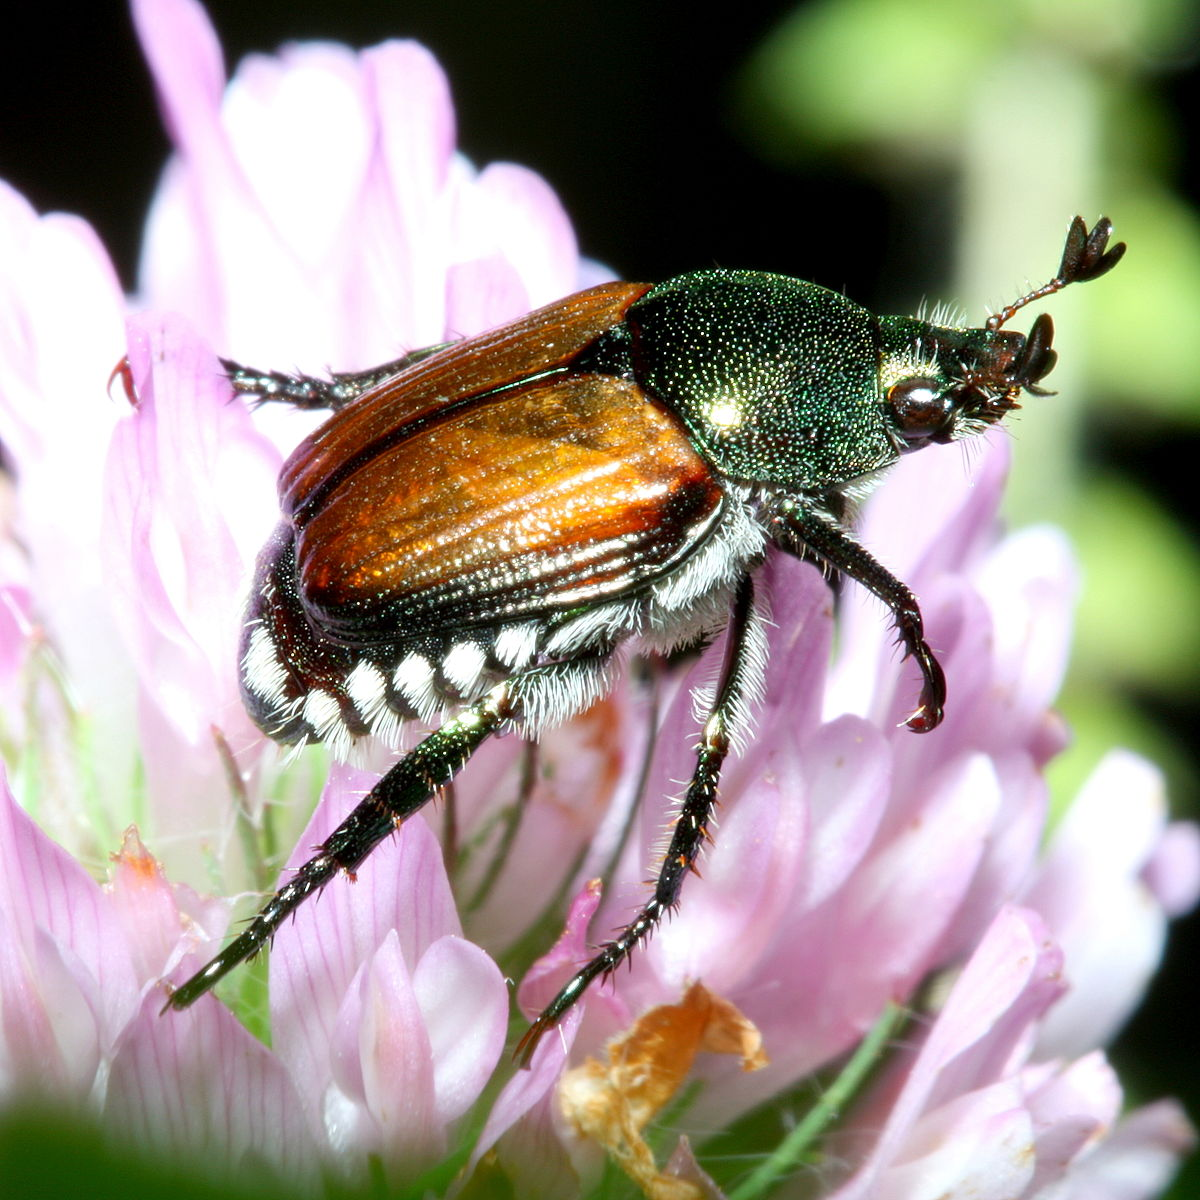 Japanese beetle - Wikipedia